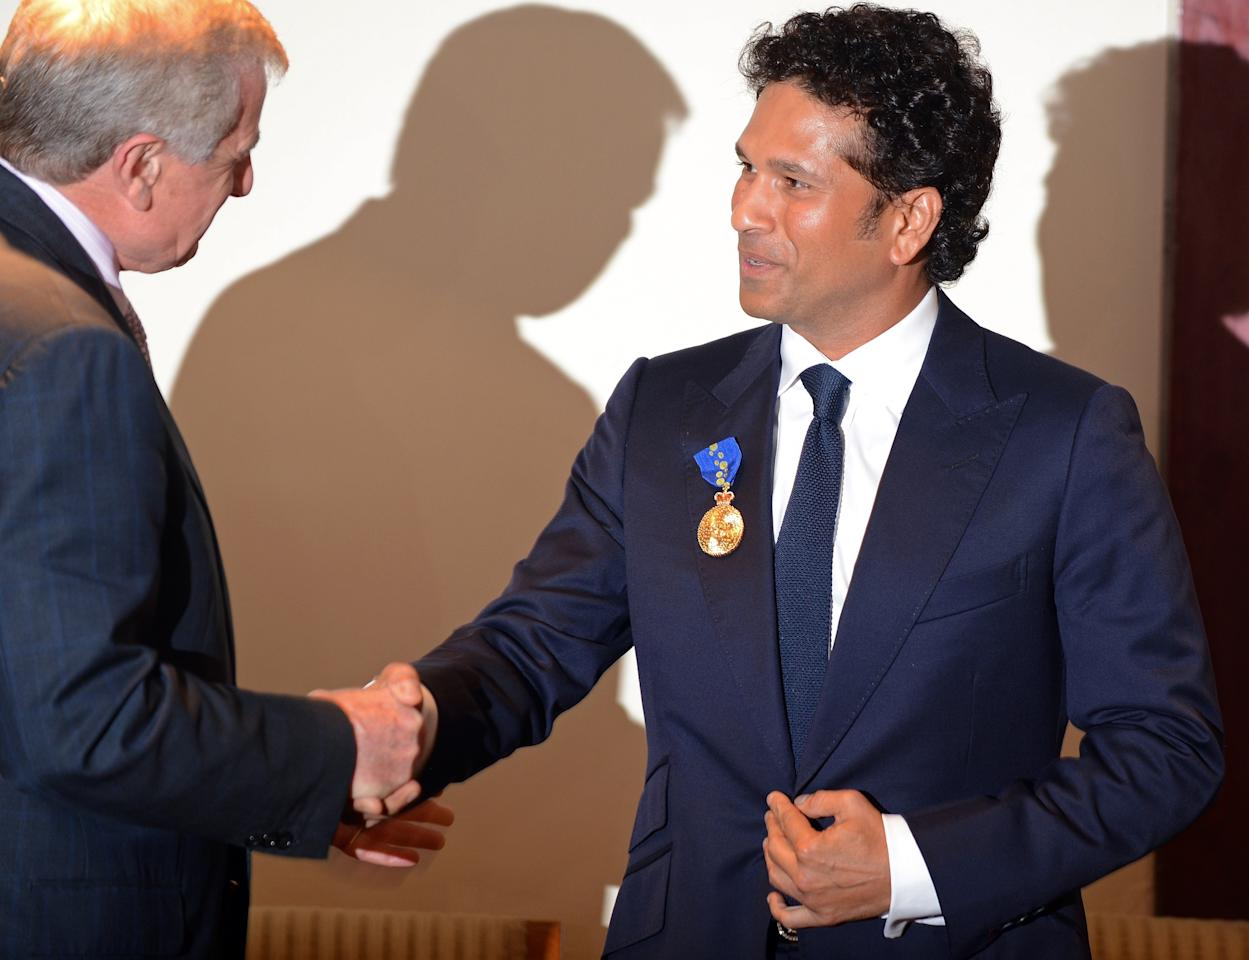 """Simon Crean (L), Australian Minister for Regional Australia, Regional Development and Local Government, shakes hands after presenting the membership of The Order of Australia to Indian cricketer Tendulkar in Mumbai on November 6, 2012. India's record-breaking batsman Sachin Tendulkar on November 6 was conferred with membership of the Order of Australia. Australian Prime Minister Julia Gillard, who announced Tendulkar's membership to the Order during a three-day state visit to India last month, told reporters that Tendulkar deserved the """"special honour"""" because he was a """"very special cricketer"""". AFP PHOTO/ INDRANIL MUKHERJEE"""